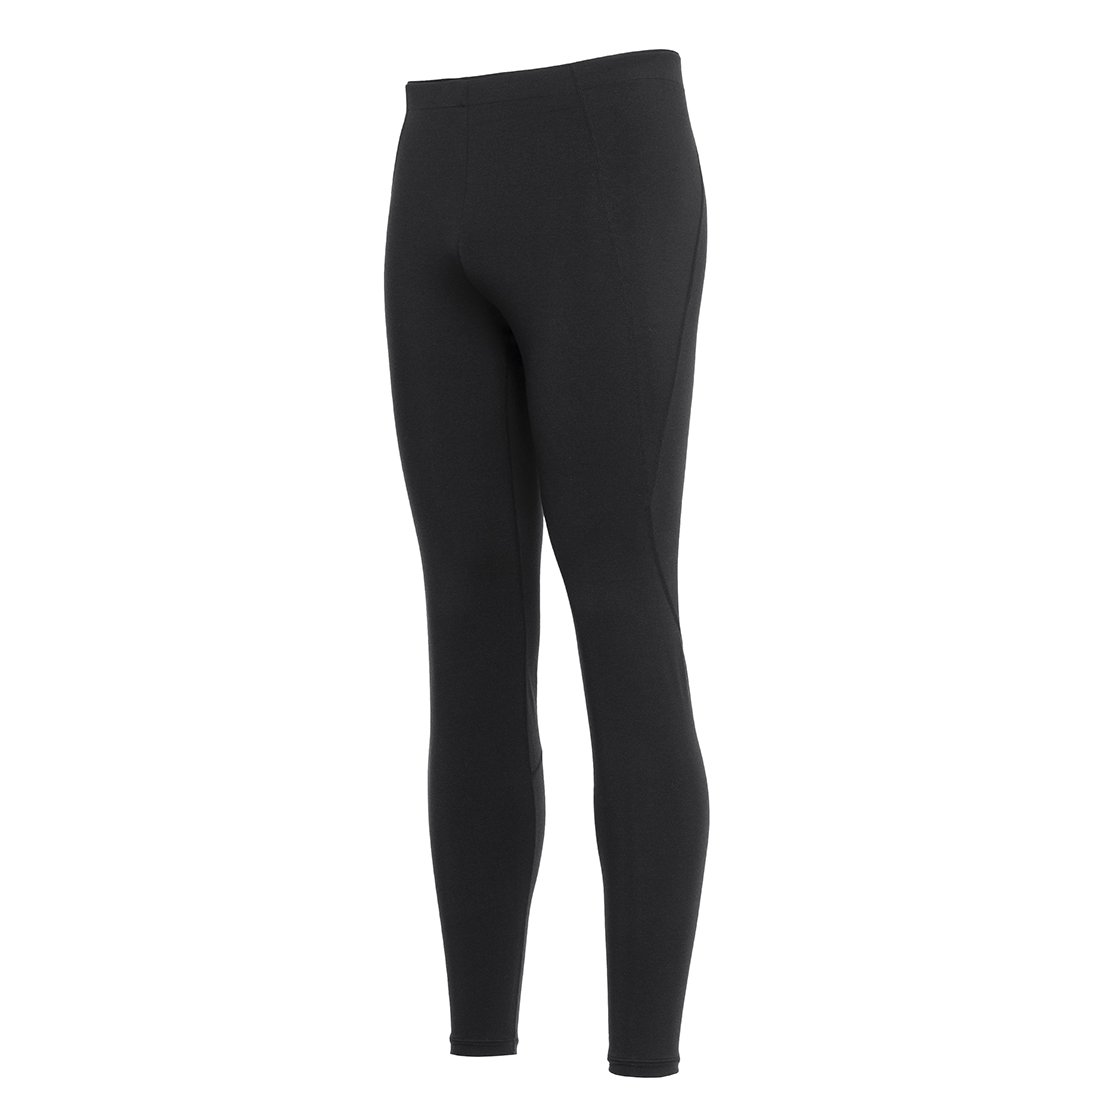 WOMEN'S BASE LAYER BOTTOM